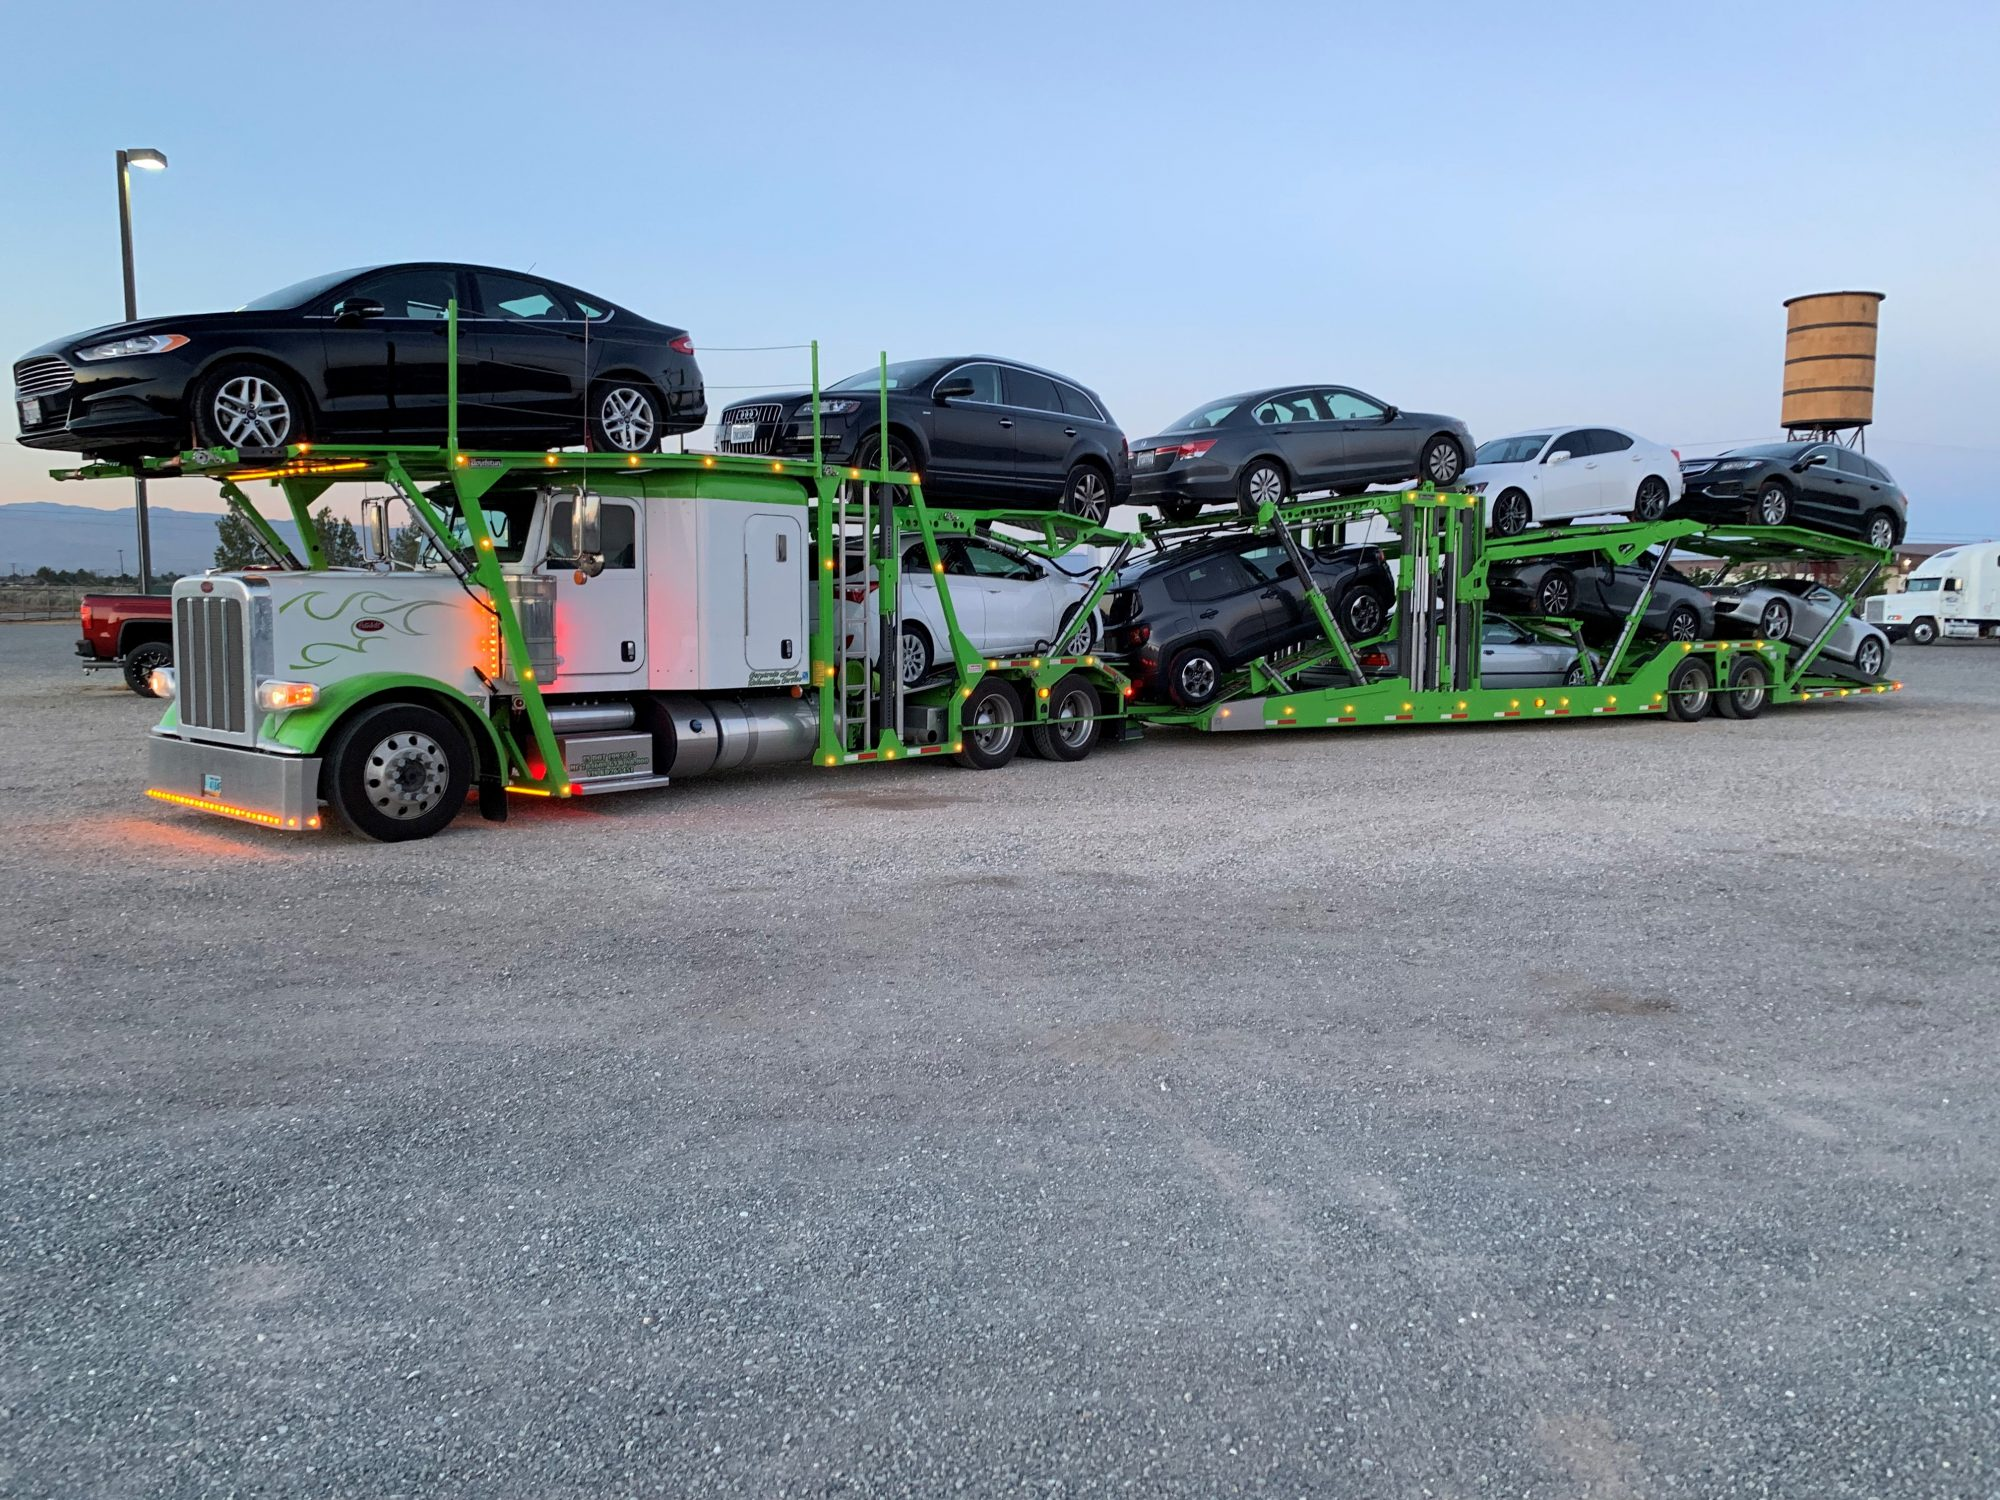 Green Boydstun trailer loaded with 10 cars